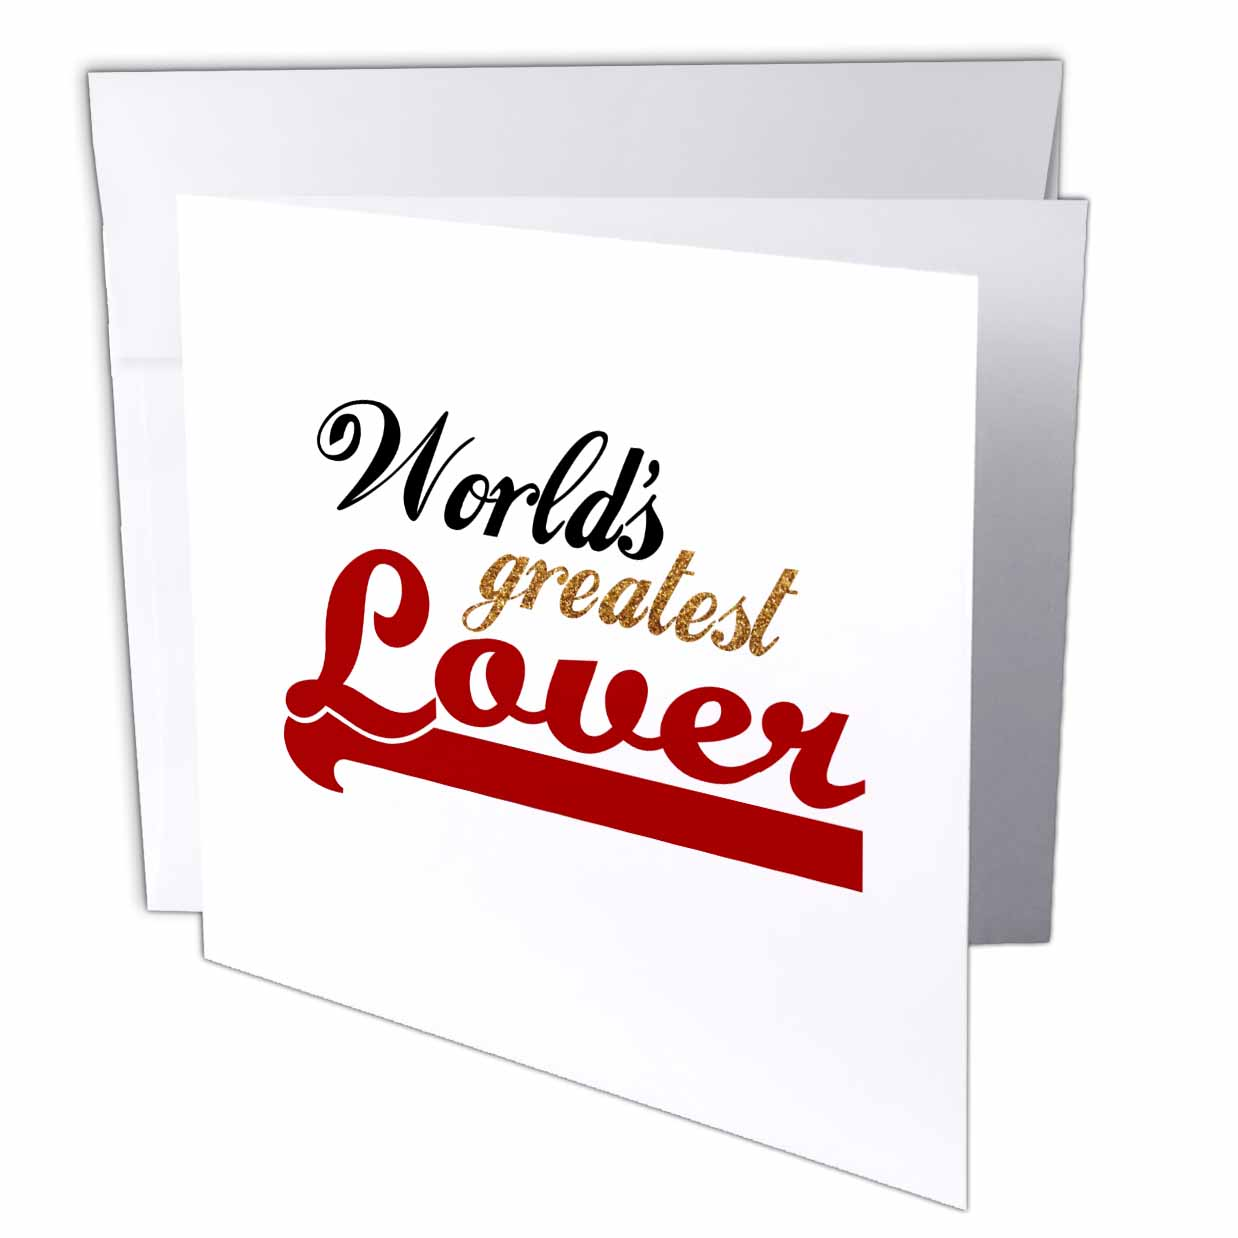 3dRose Worlds Greatest Lover - Funny romantic gifts - humorous fun love romance anniversary Valentines day, Greeting Cards, 6 x 6 inches, set of 6